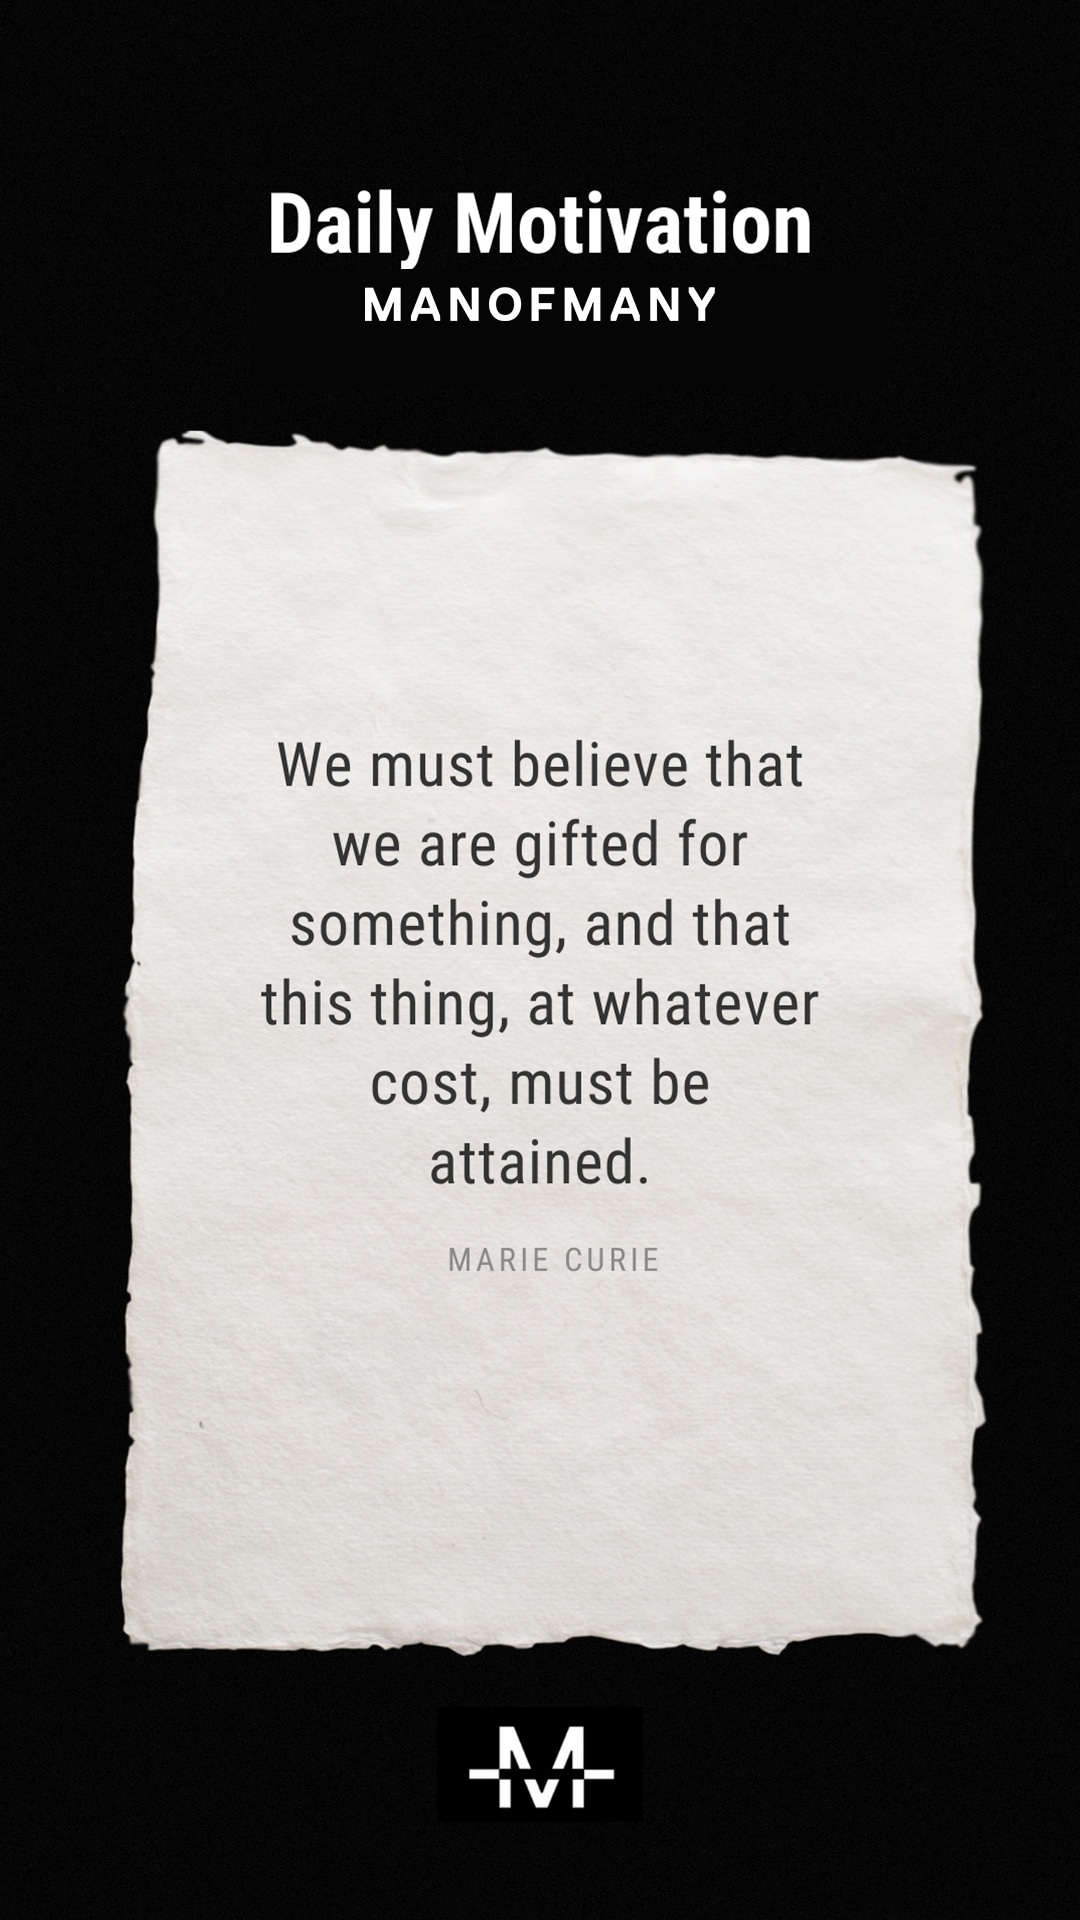 We must believe that we are gifted for something, and that this thing, at whatever cost, must be attained. –Marie Curie quote